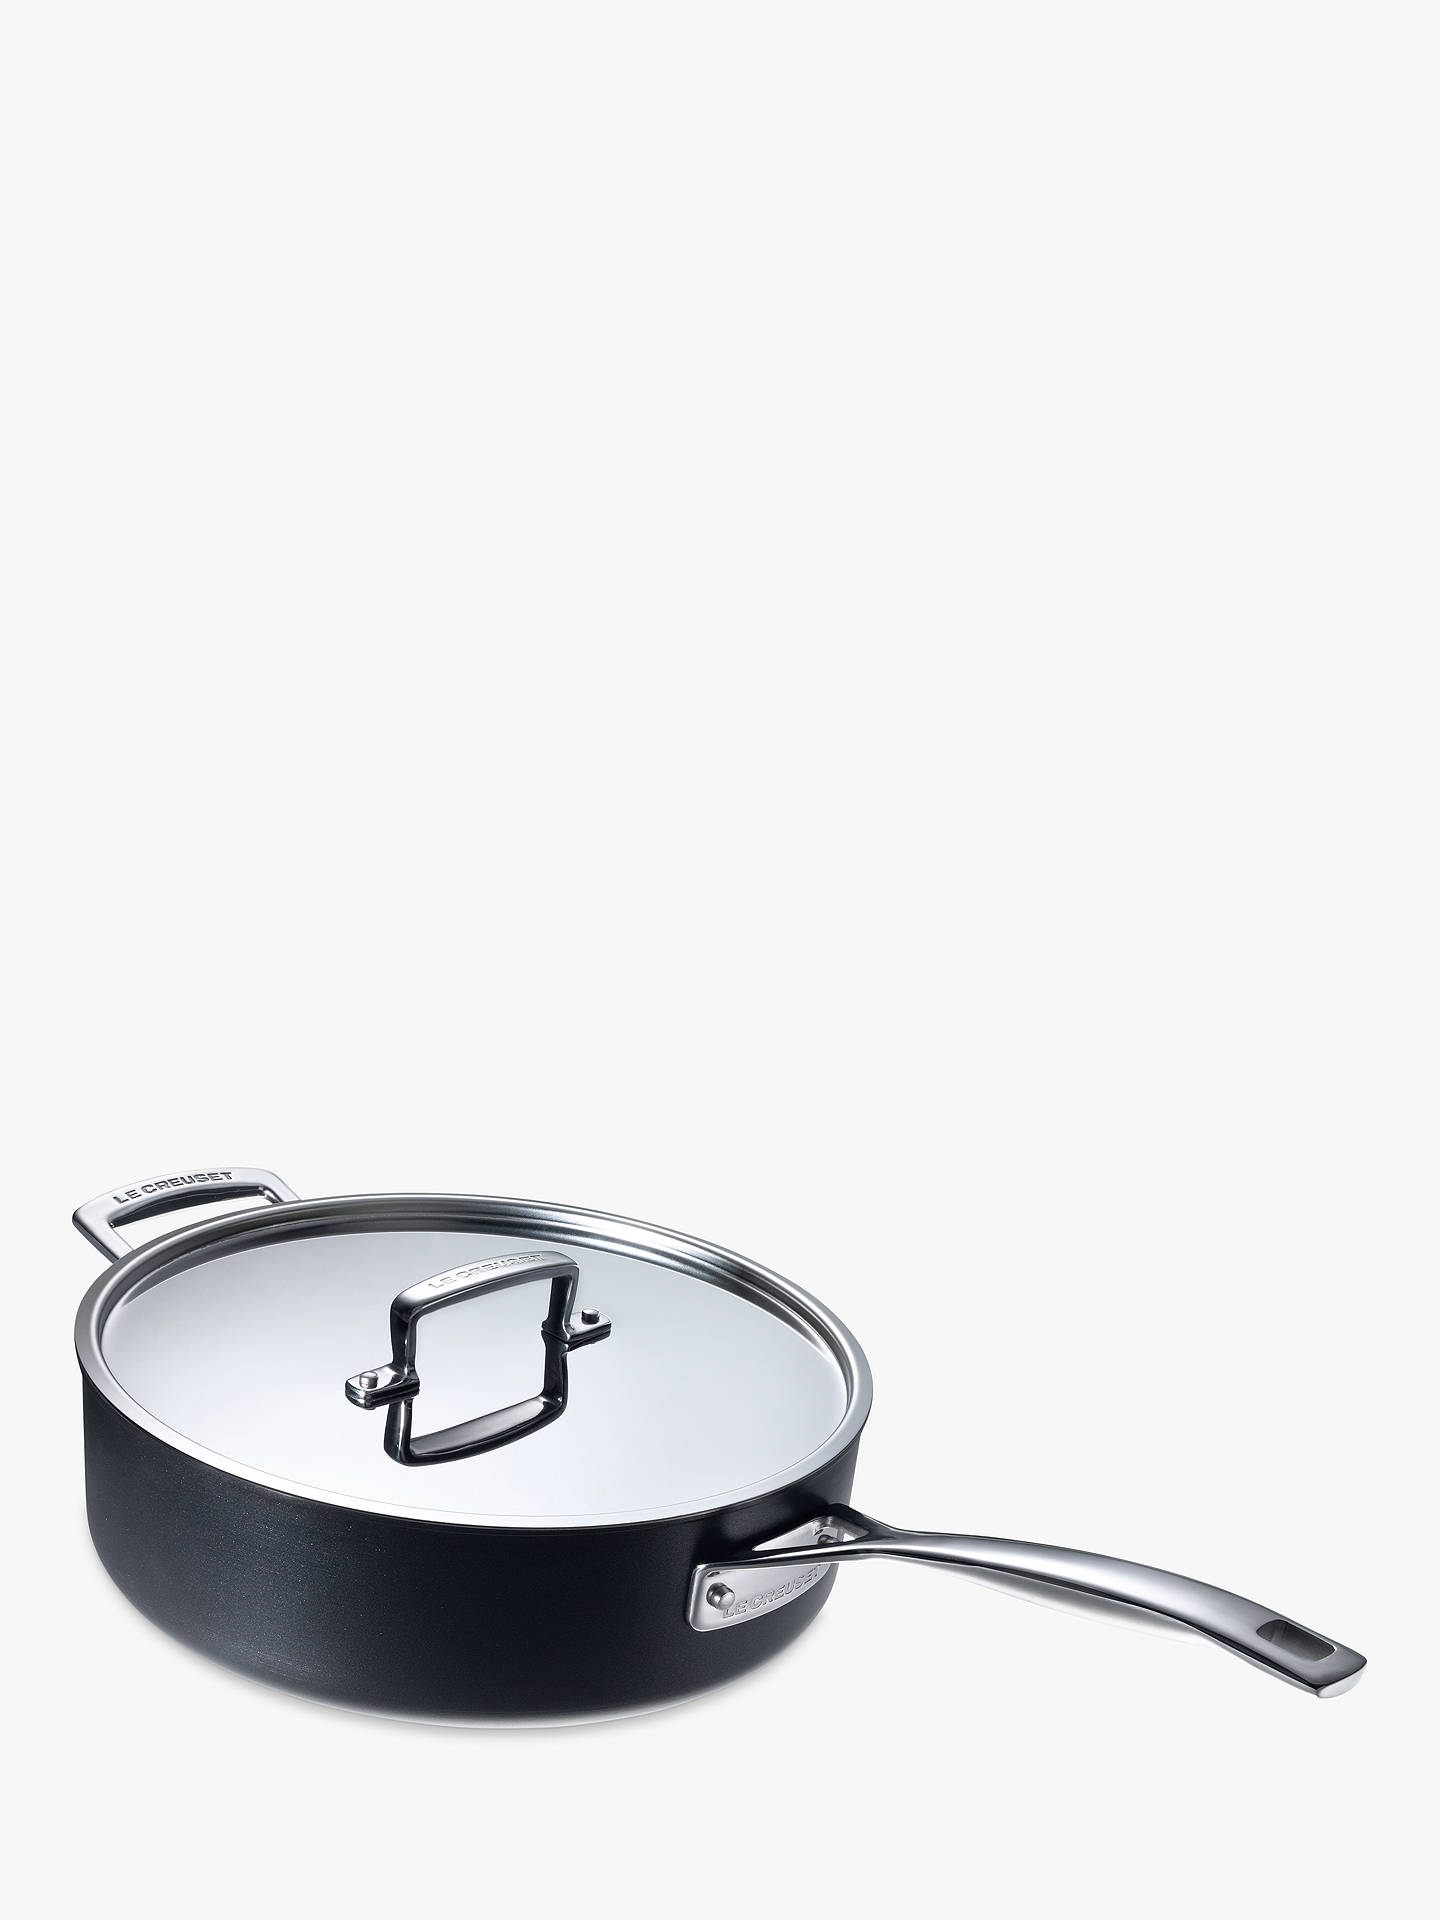 Buy Le Creuset Professional Hard Anodised Saute Pan, 26cm Online at johnlewis.com